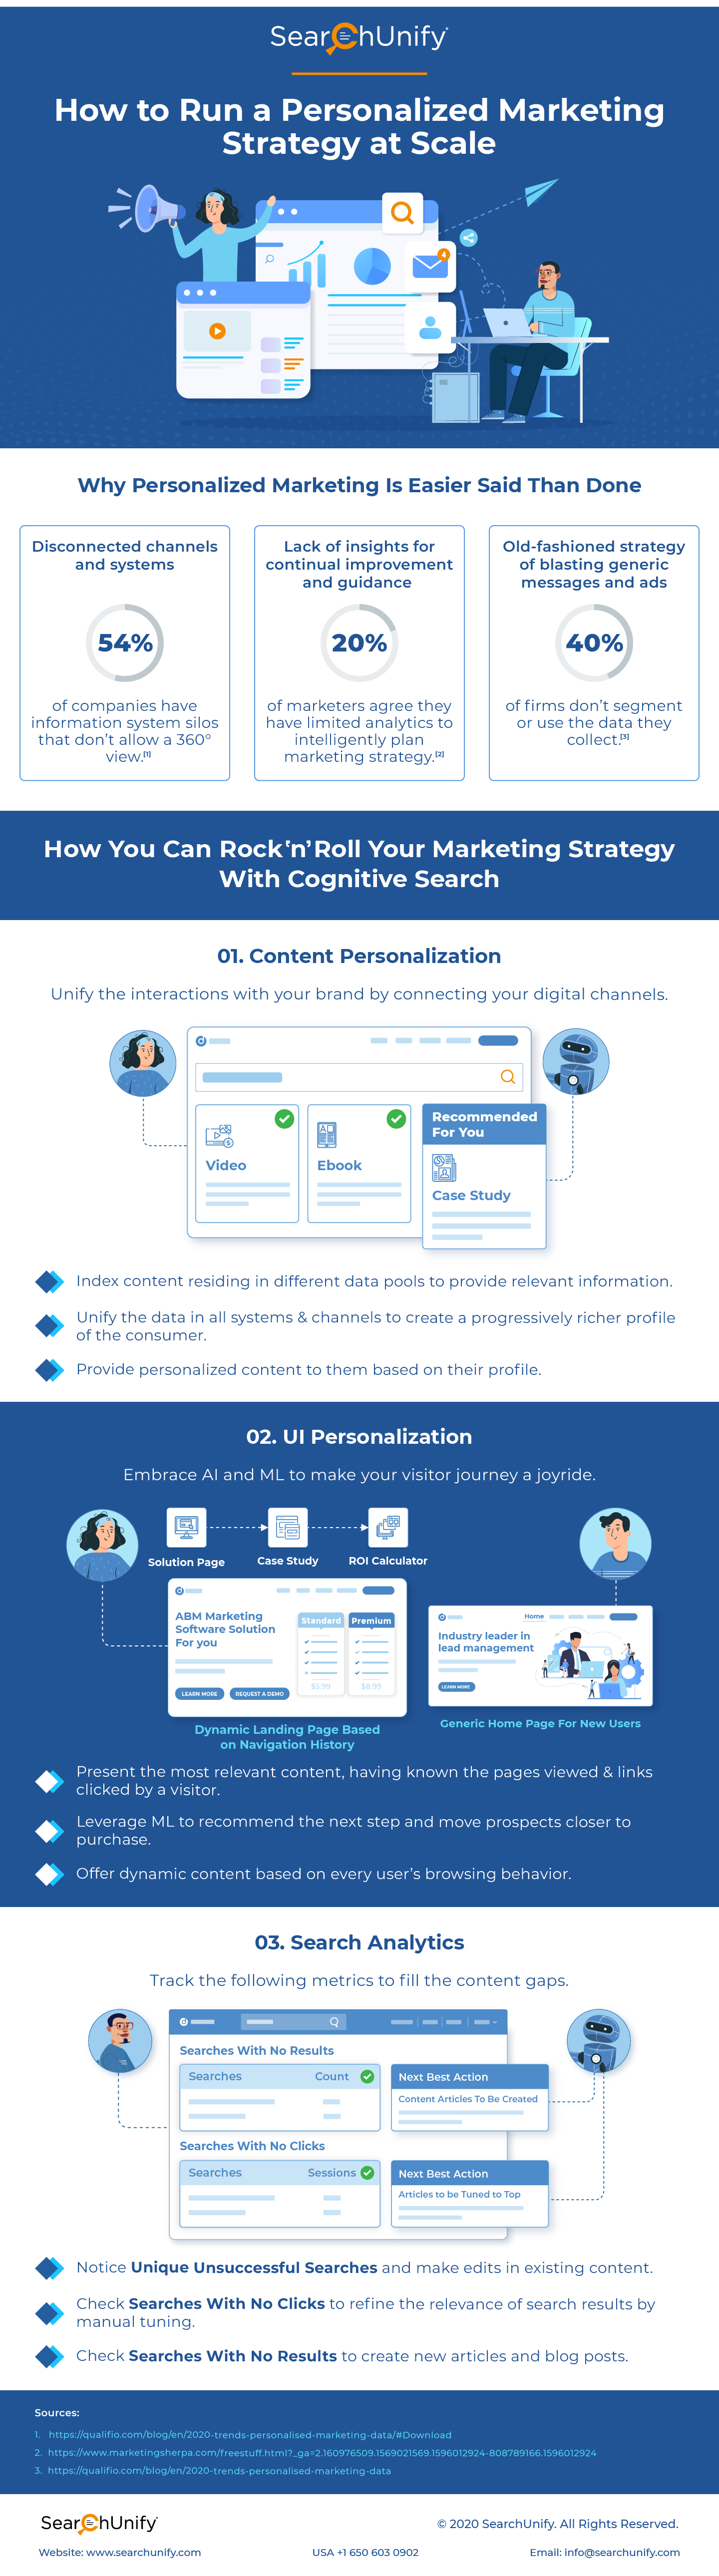 How To Run A Personalized Marketing Strategy At Scale